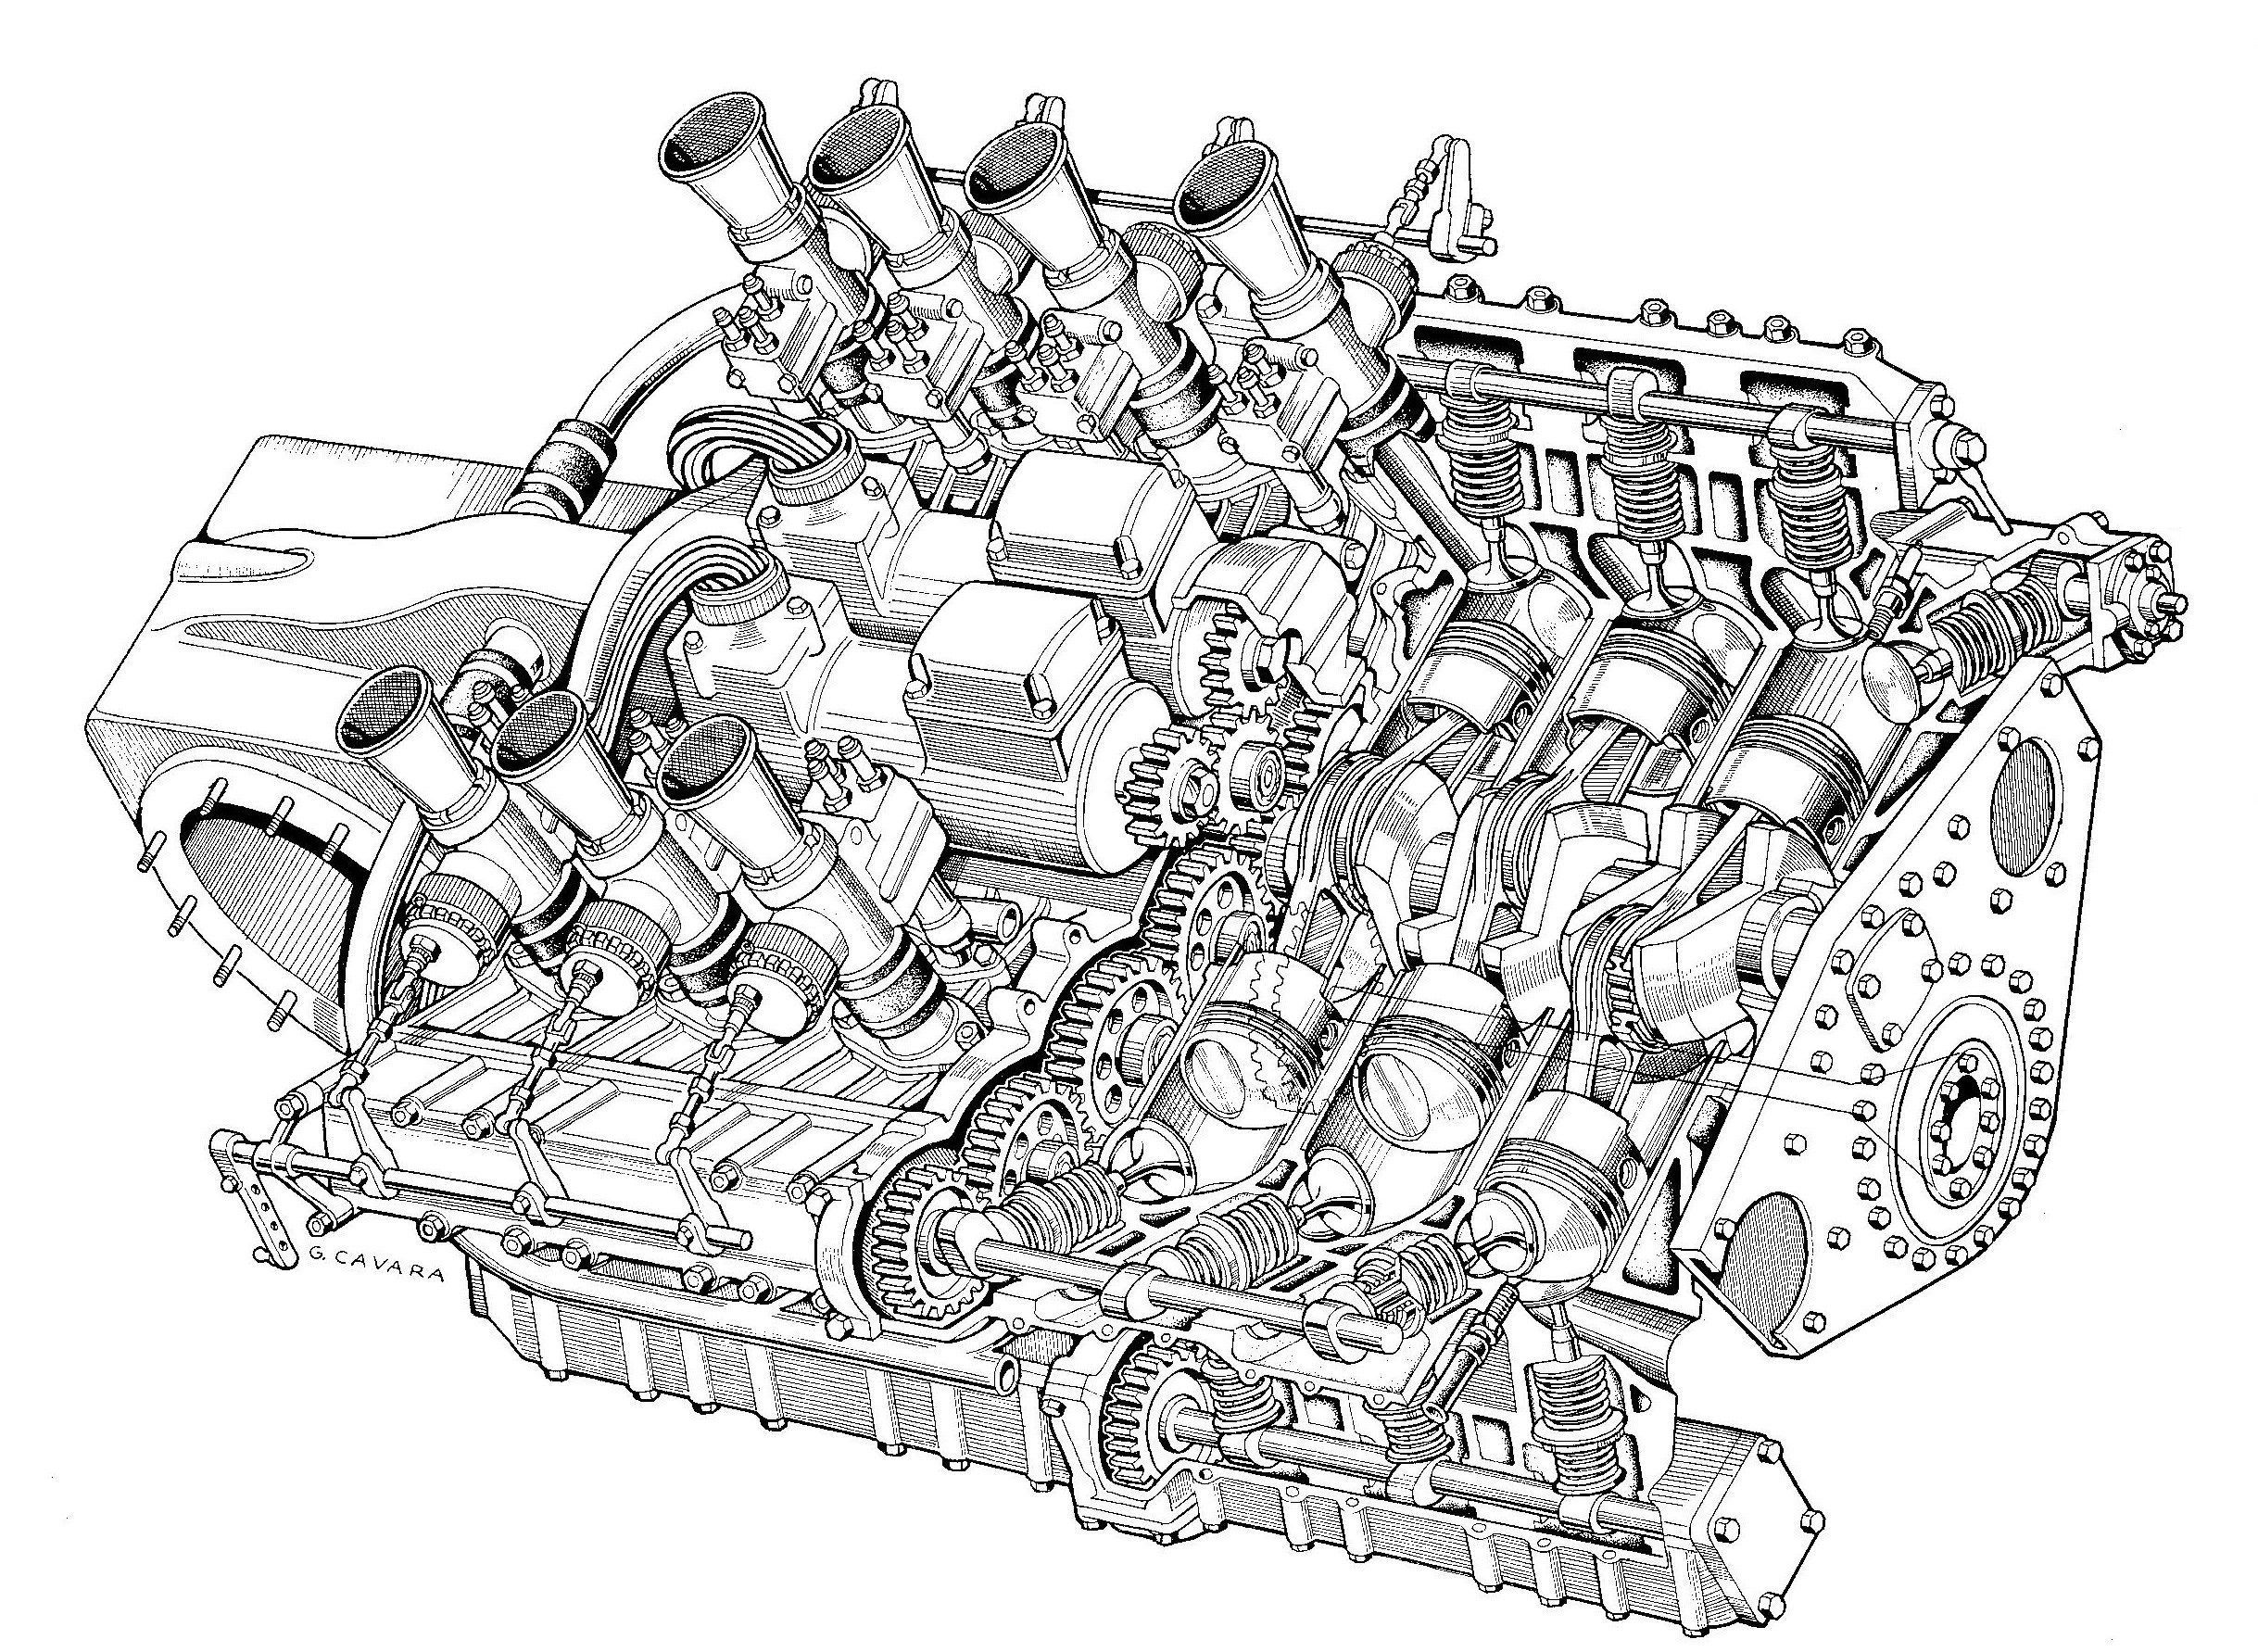 medium resolution of 2 500cc flat 12 alfa romeo engine for the alfetta 160 project of 1952 illustrated by g iovanni cavara